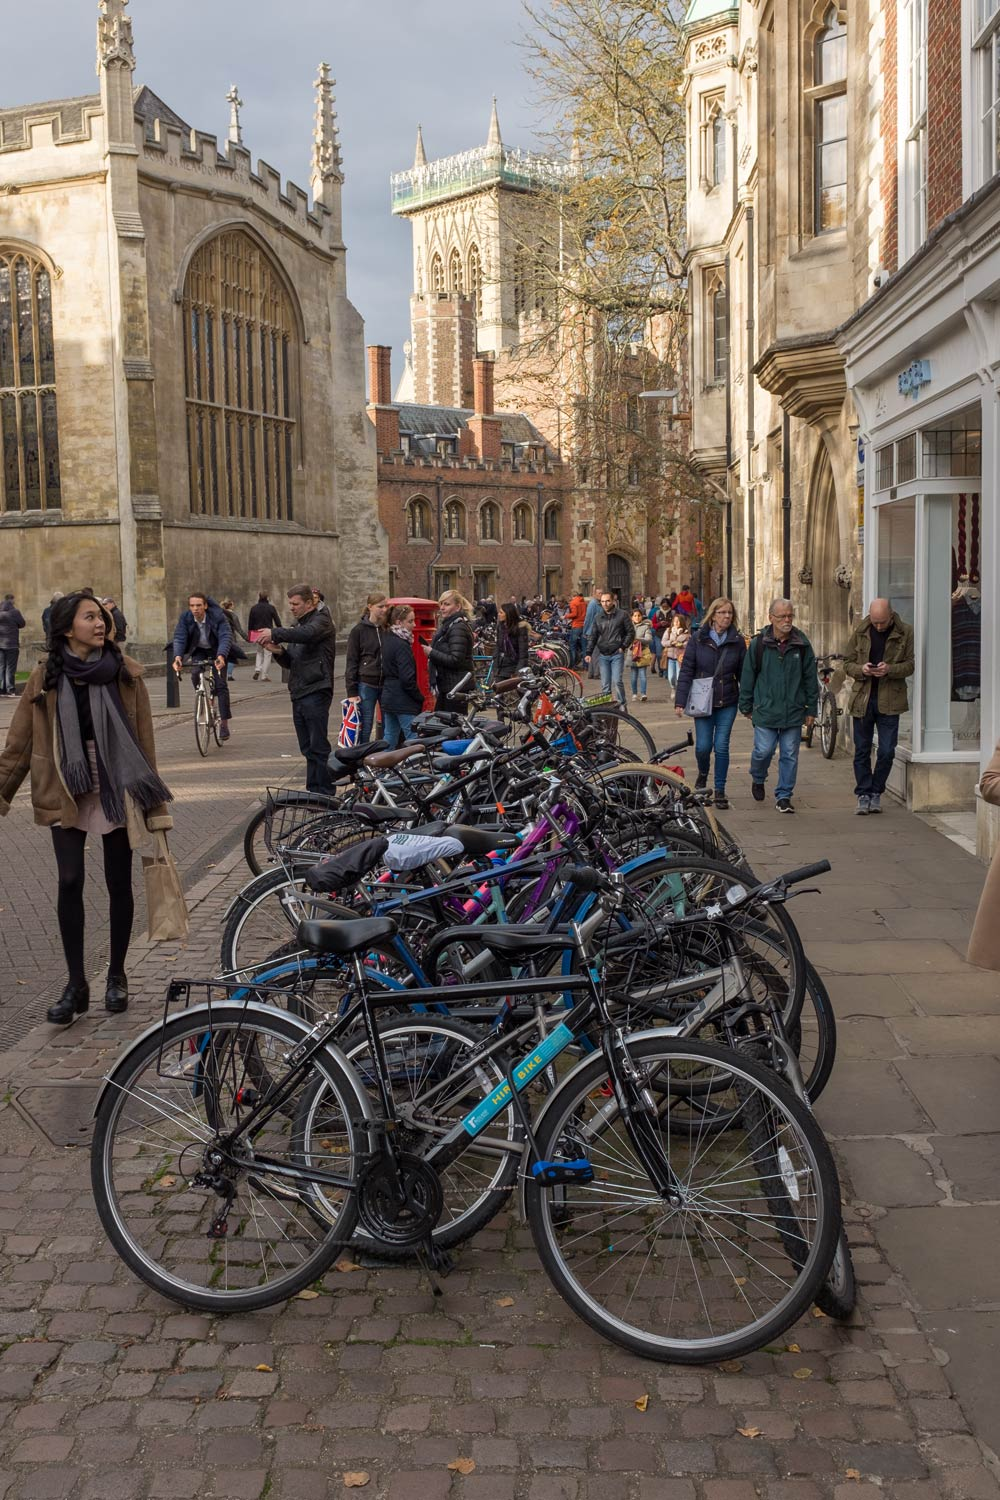 Bicycles, pedestrians and buildings in Cambridge, England